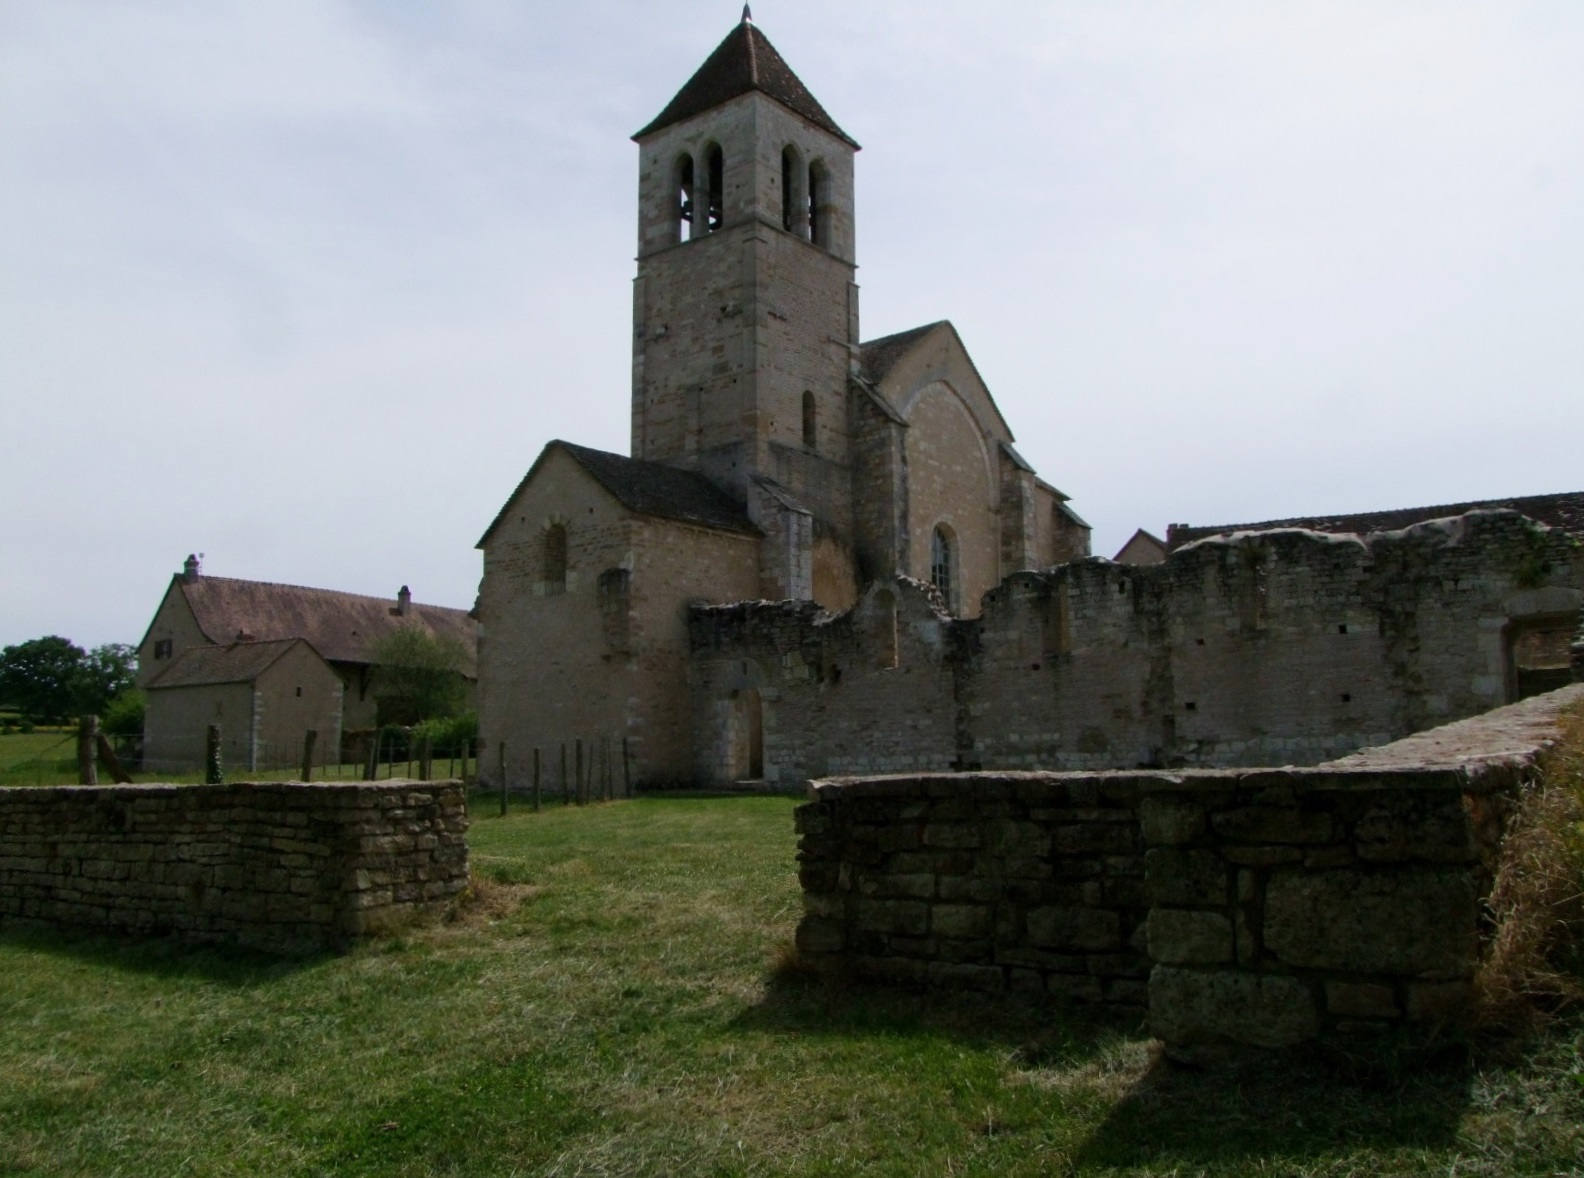 Church of Lancharre to Chapaize.